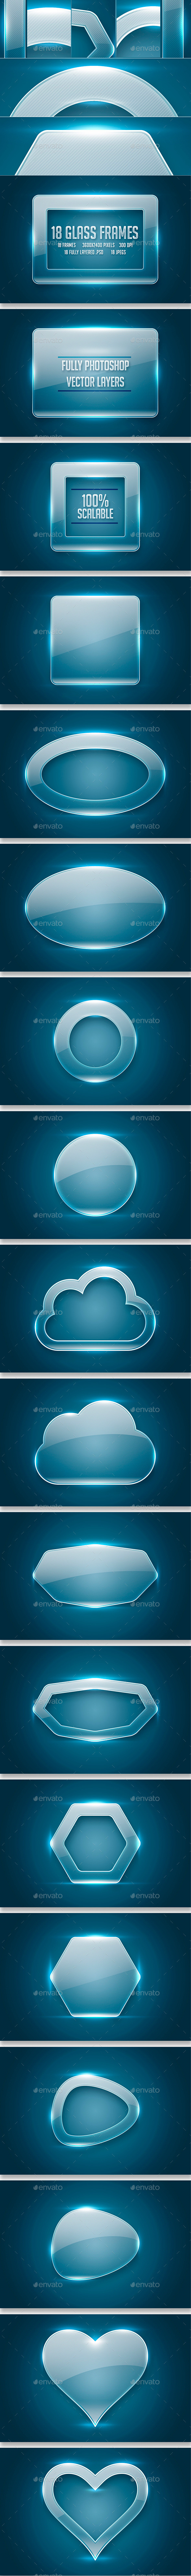 Glass Frames - Backgrounds Graphics